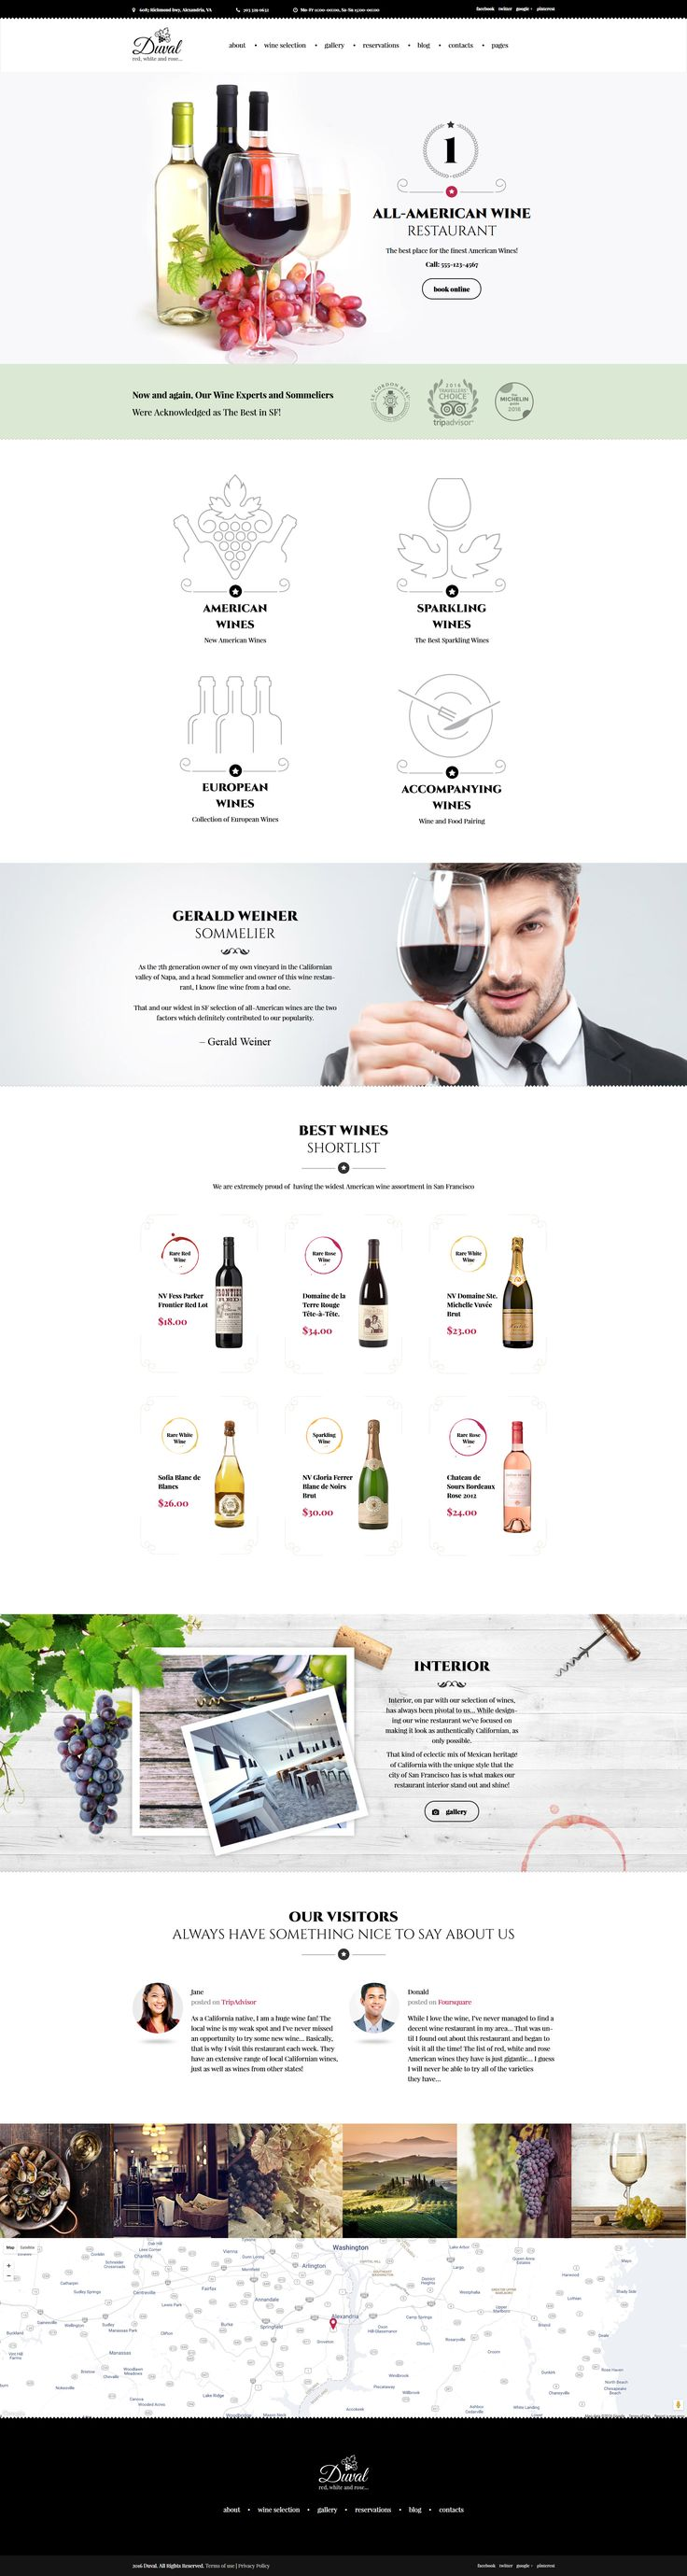 Check out a ready-made responsive WordPress template built with Bootstrap 3 that is designed and developed to present wineries in the most favorable manner online. Thanks to a drag-and-drop Power page builder, webmasters can feel the ease of organizing the presentation of the vineyard in the most favorable manner.   #wordpress #responsivedesign #winery #restaurant #powerbuilder #bootstrap  https://www.templatemonster.com/wordpress-themes/duval-wine-restaurant-wordpress-theme-59007.html